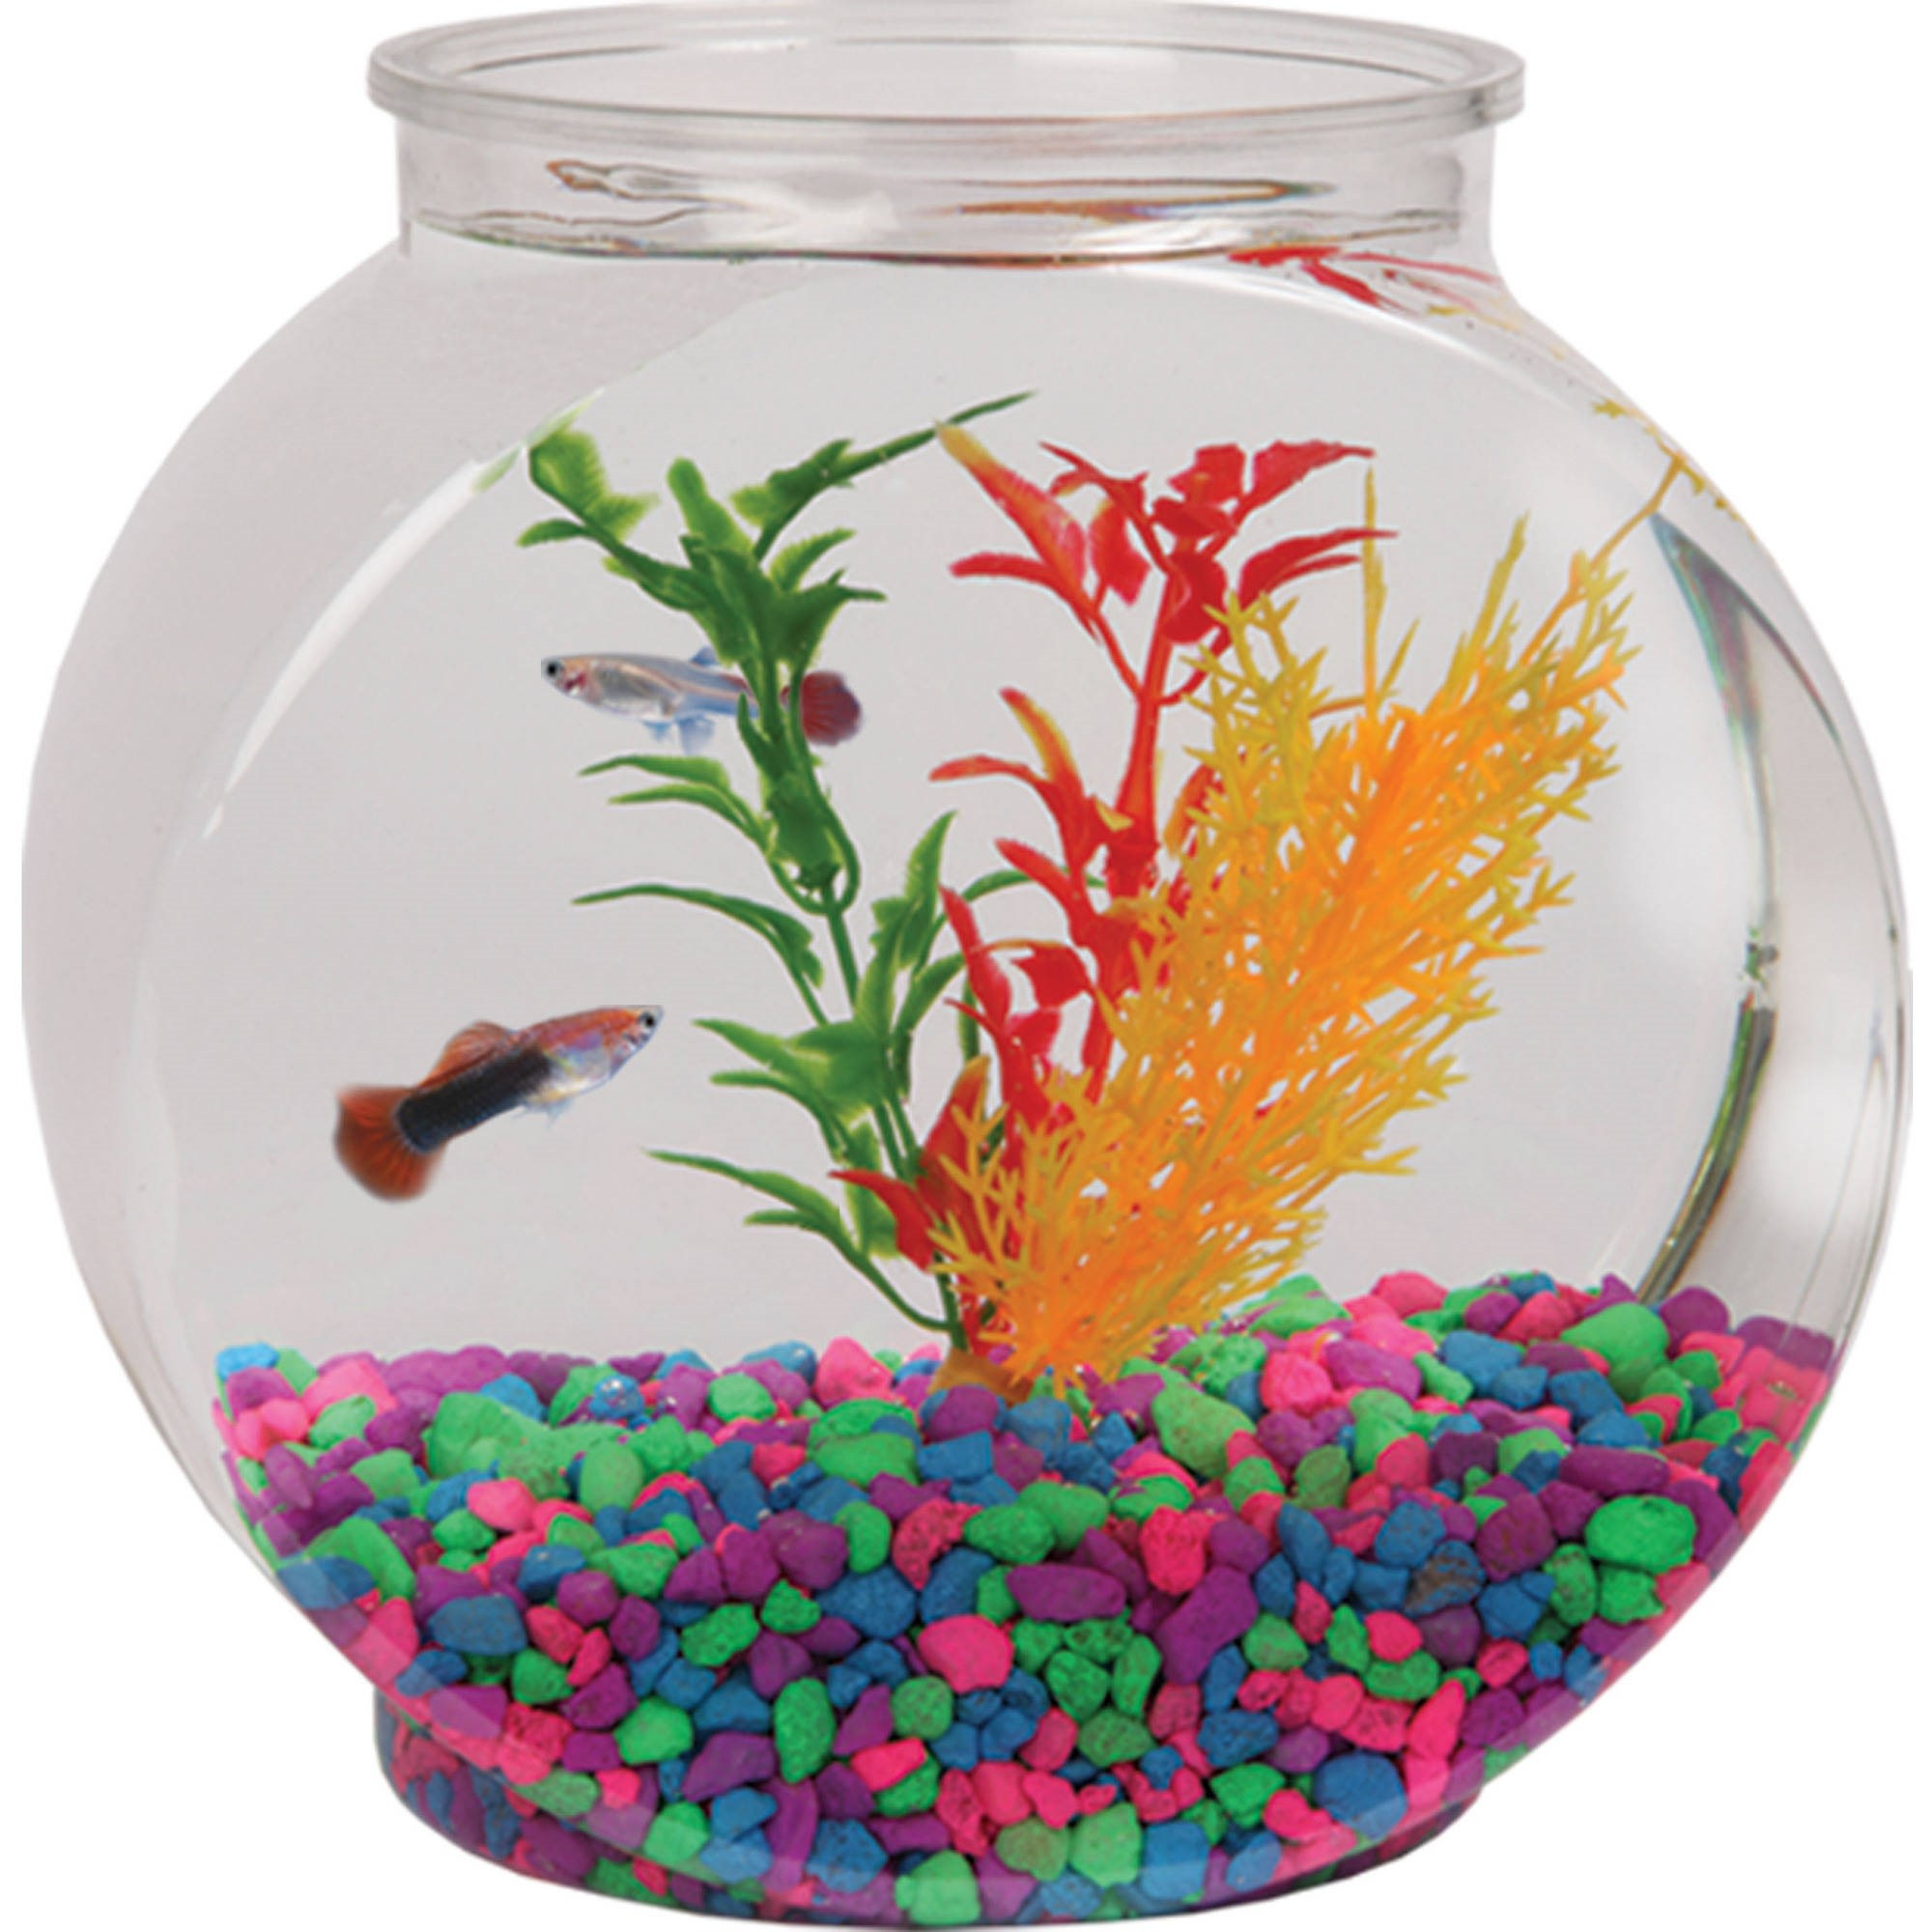 "Hawkeye 1-Gallon Drum Fish Bowl, Shatterproof Plastic, 8.5""L x 5""W x 8.5""H"